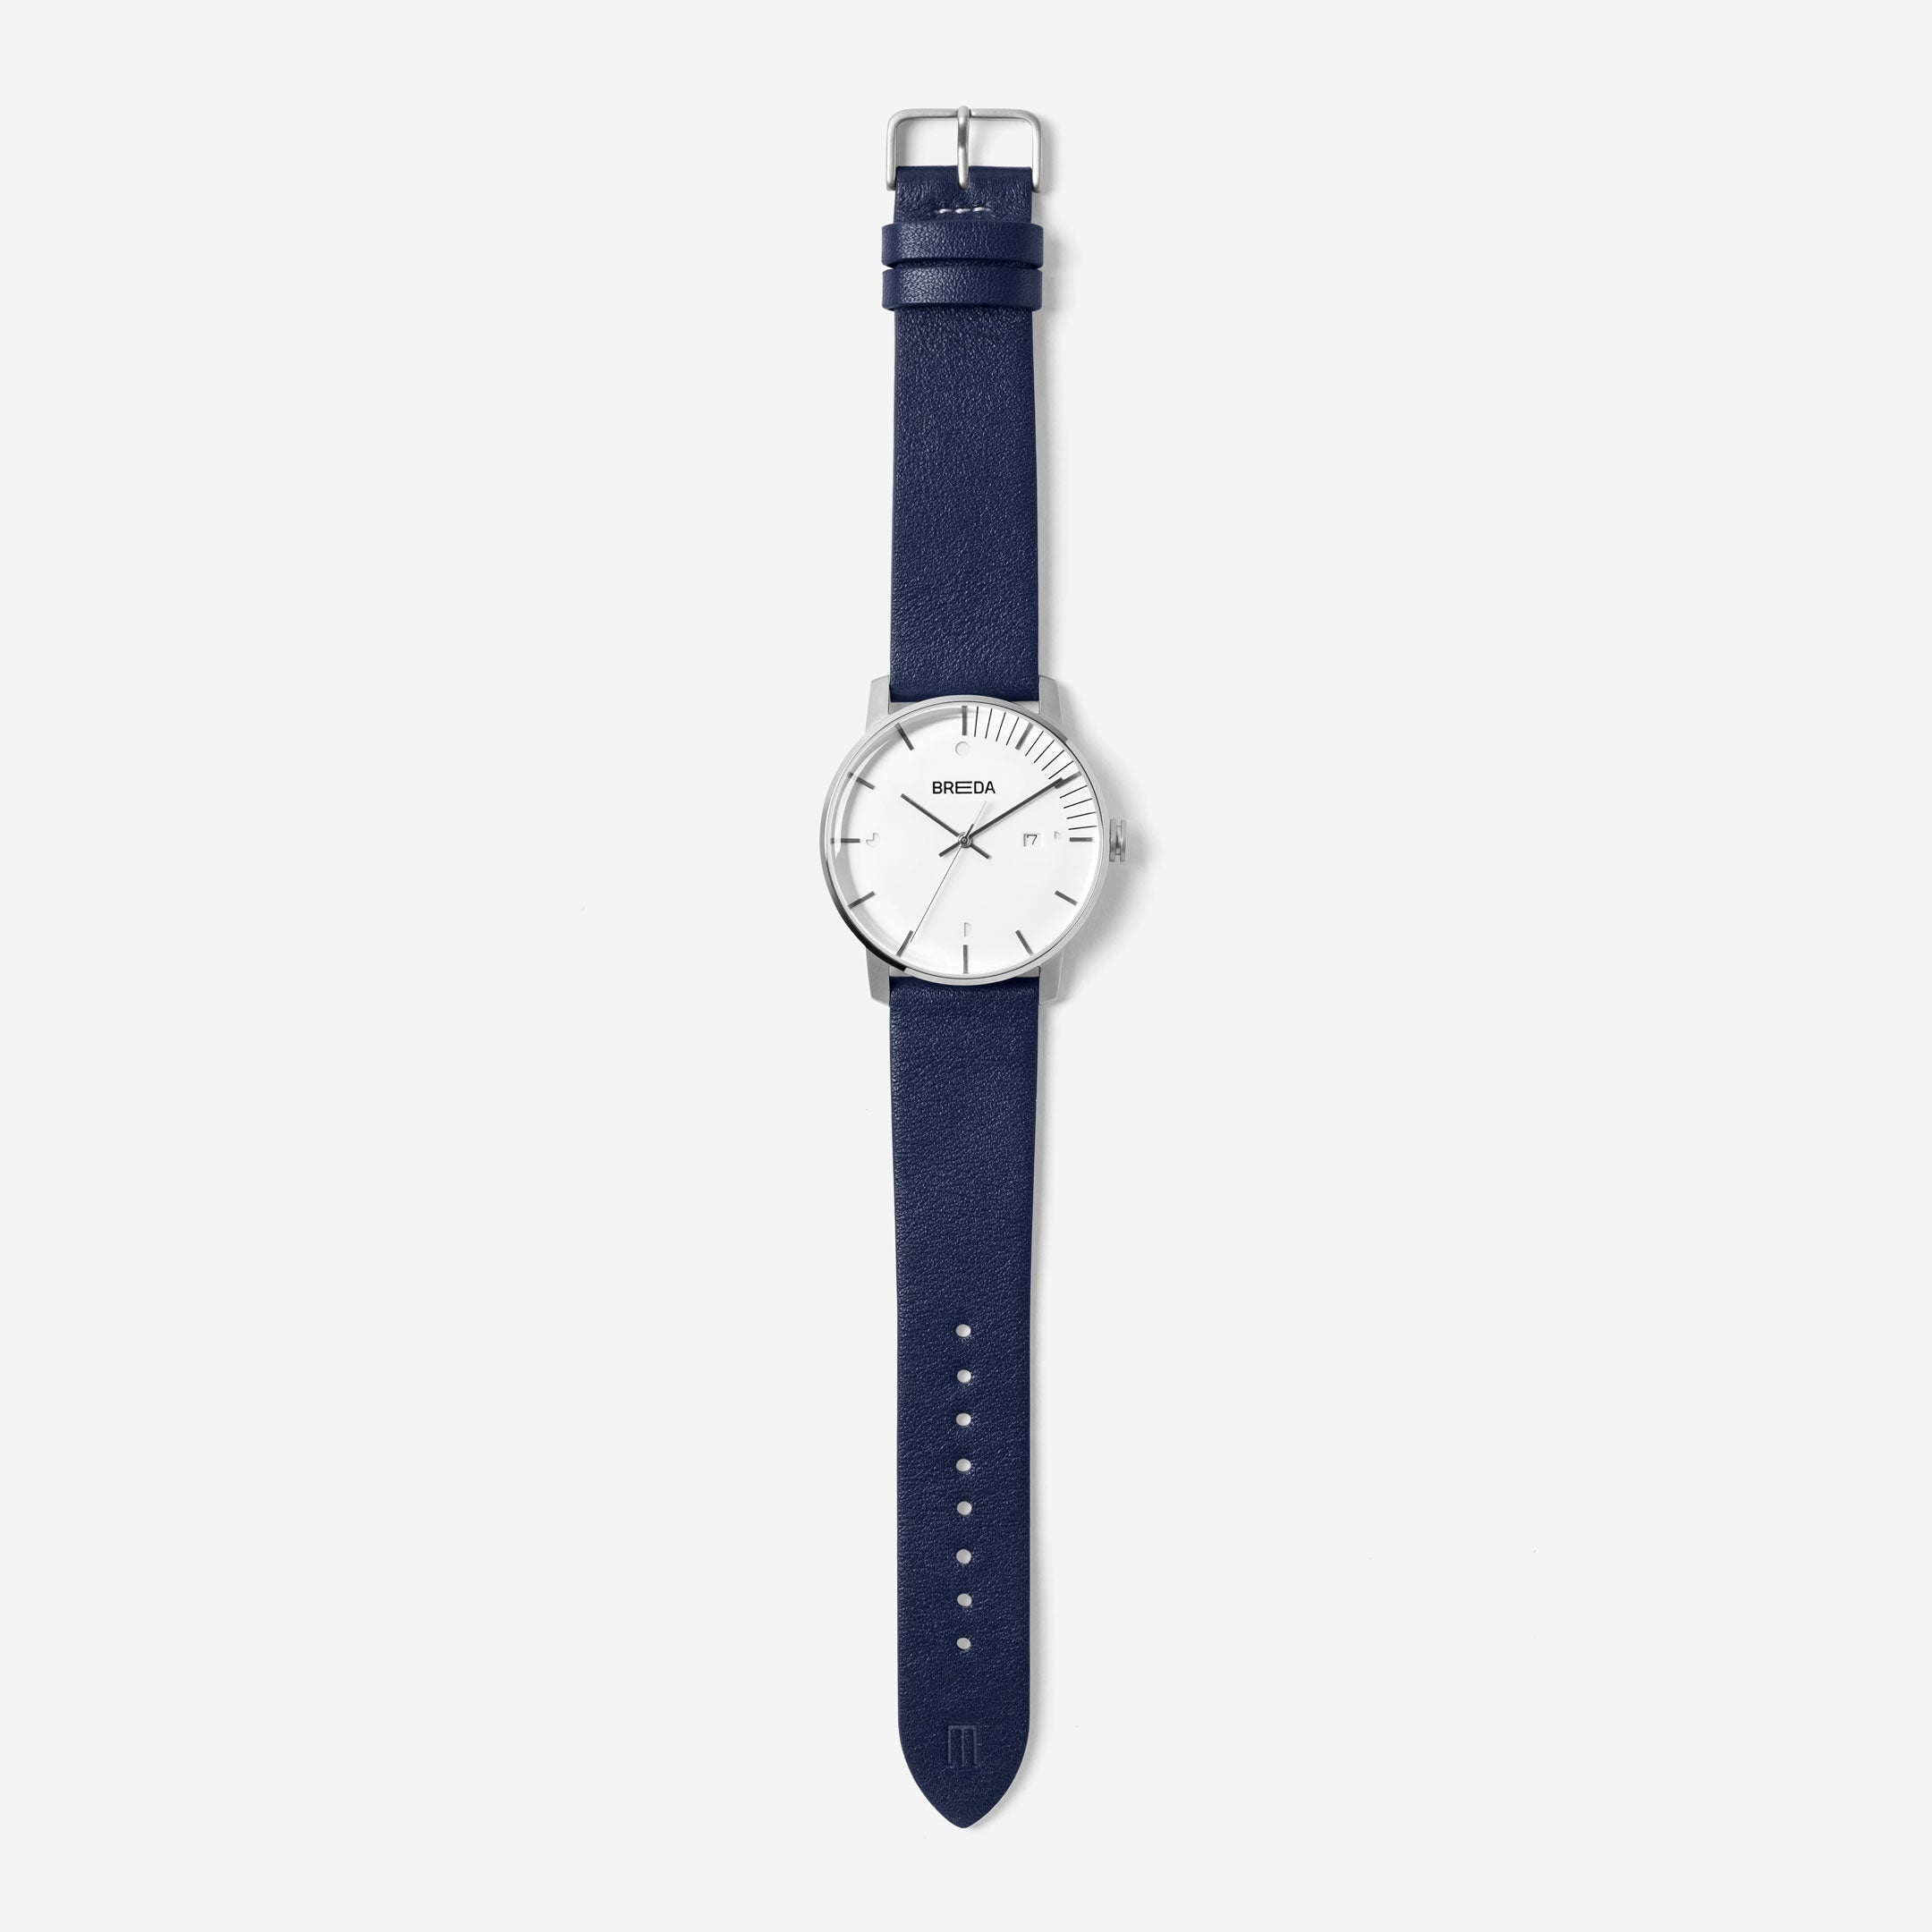 //cdn.shopify.com/s/files/1/0879/6650/products/breda-phase-9000e-silver-navy-watch-long_1024x1024.jpg?v=1491411934